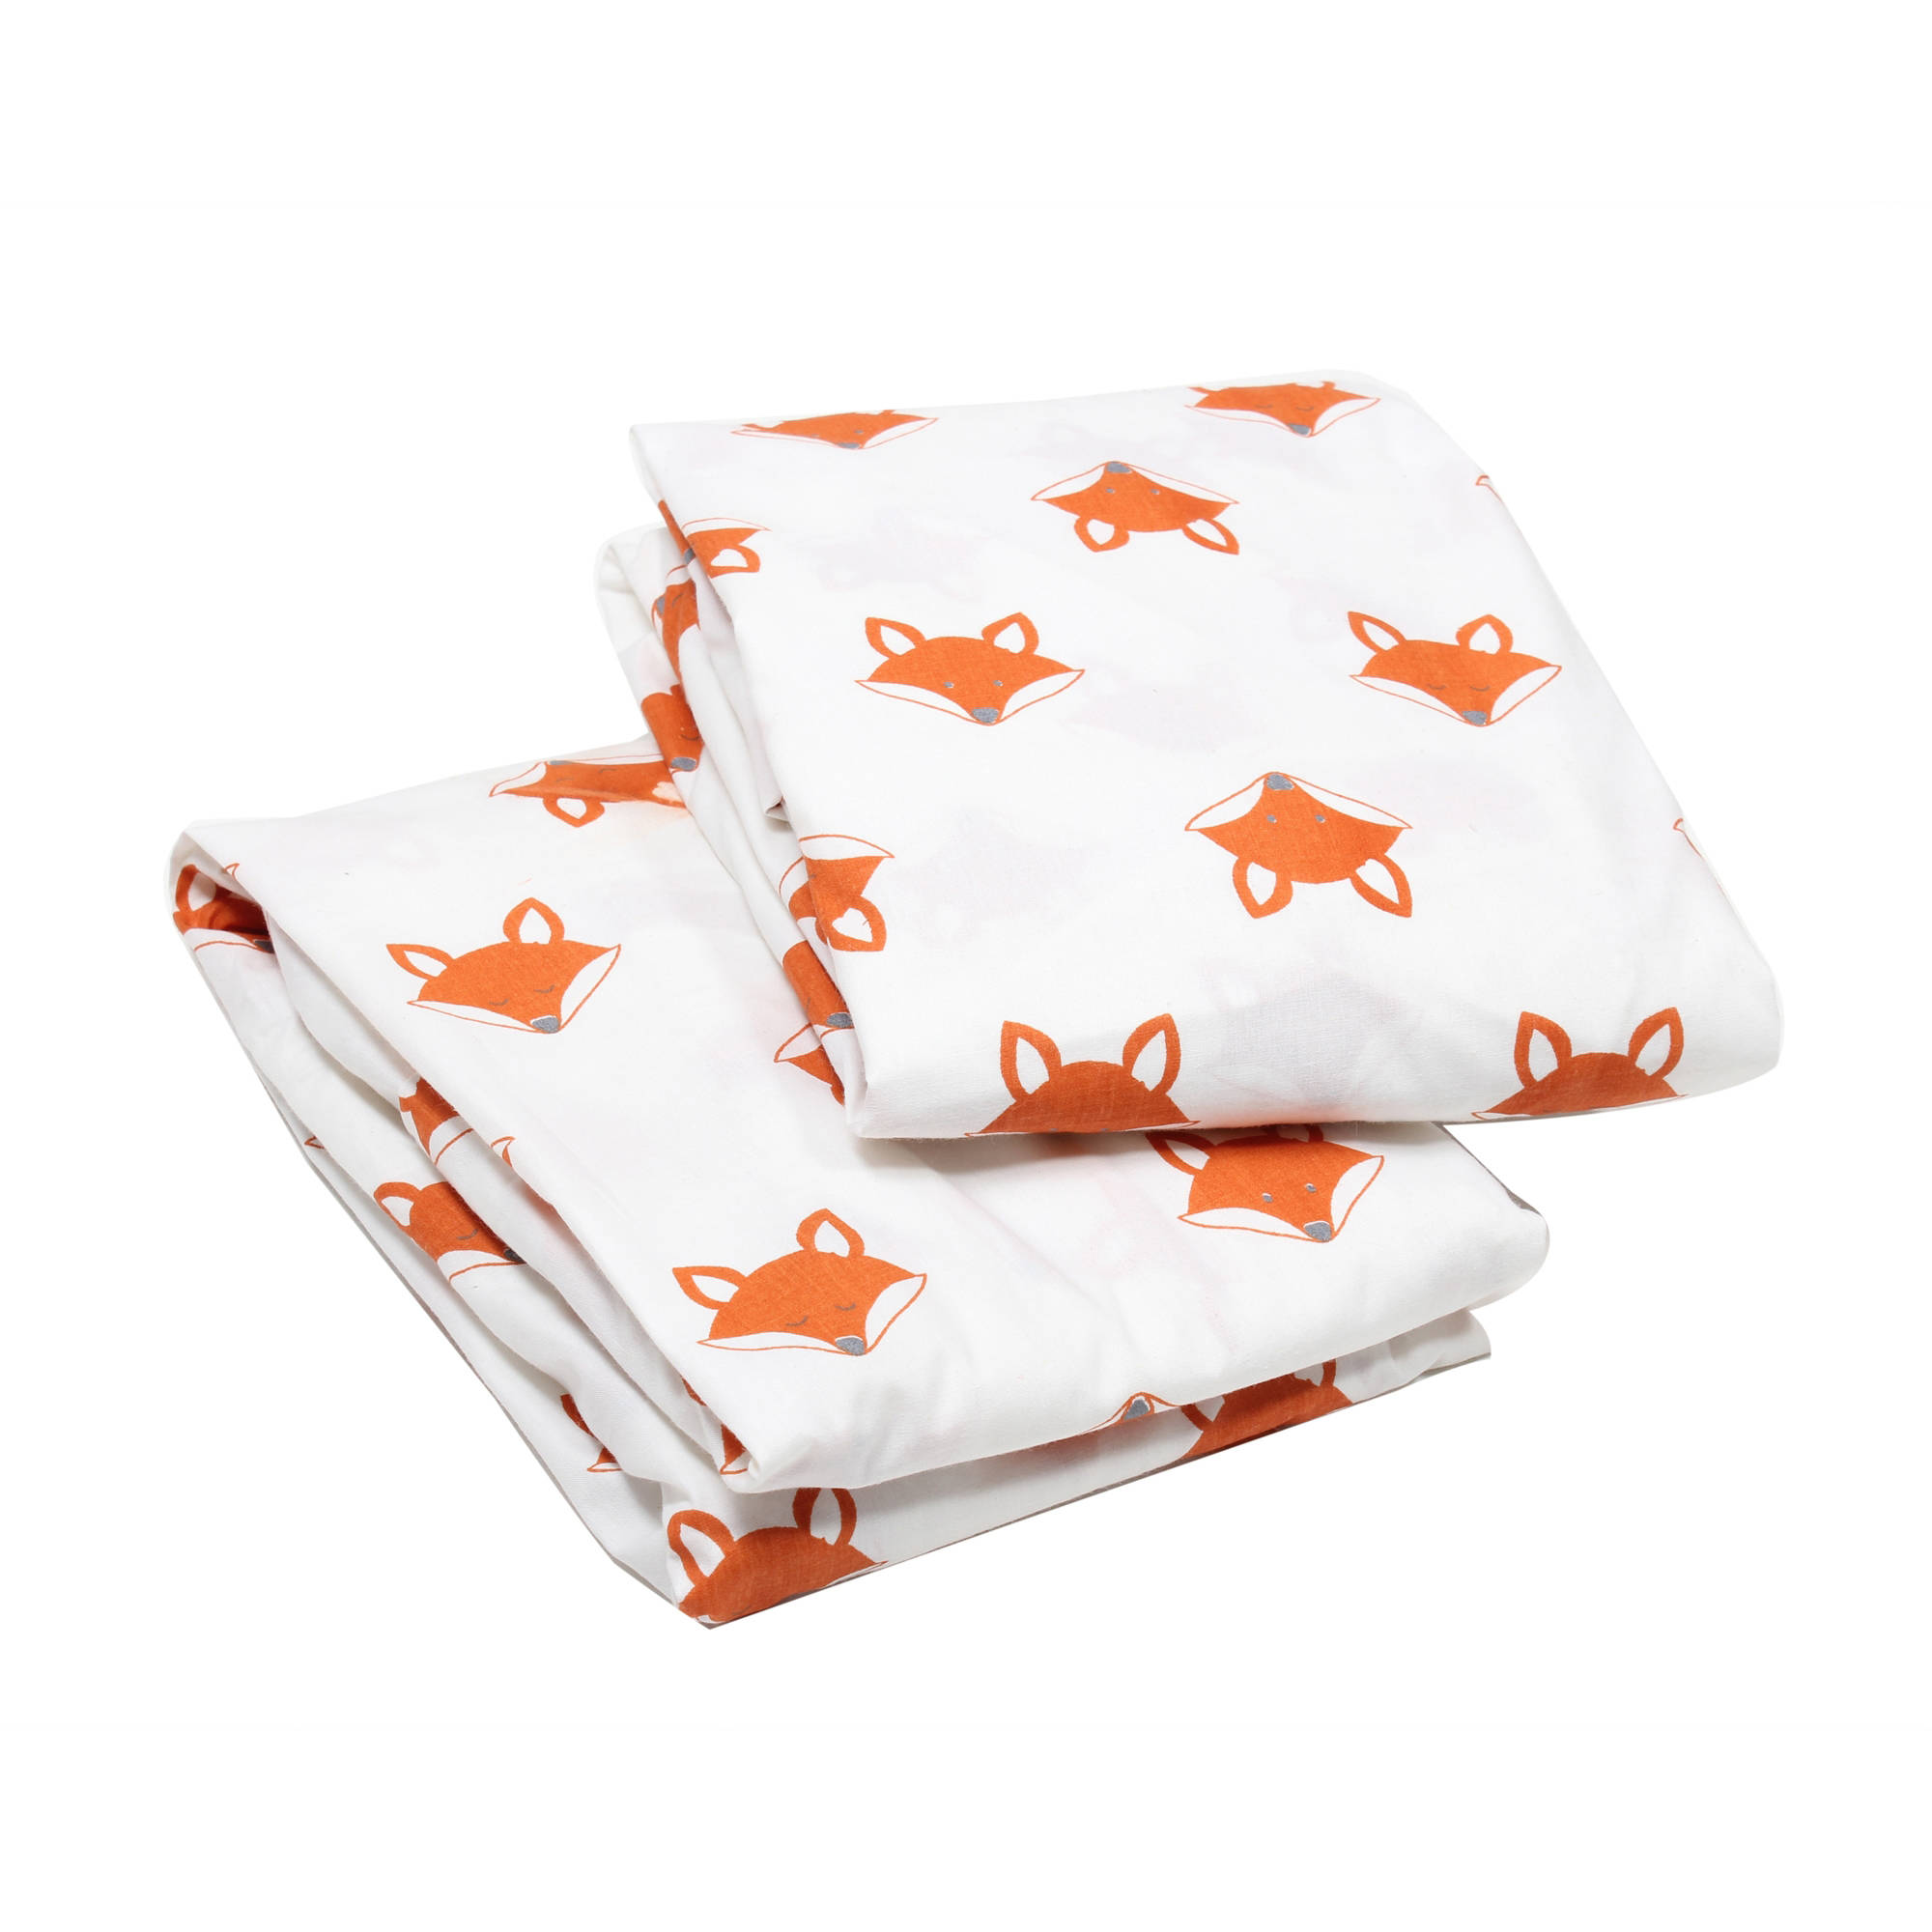 Bacati - Playful Foxs Orange/Gray 100% Cotton Percale Crib/Toddler Bed Fitted Sheets, 2-Pack